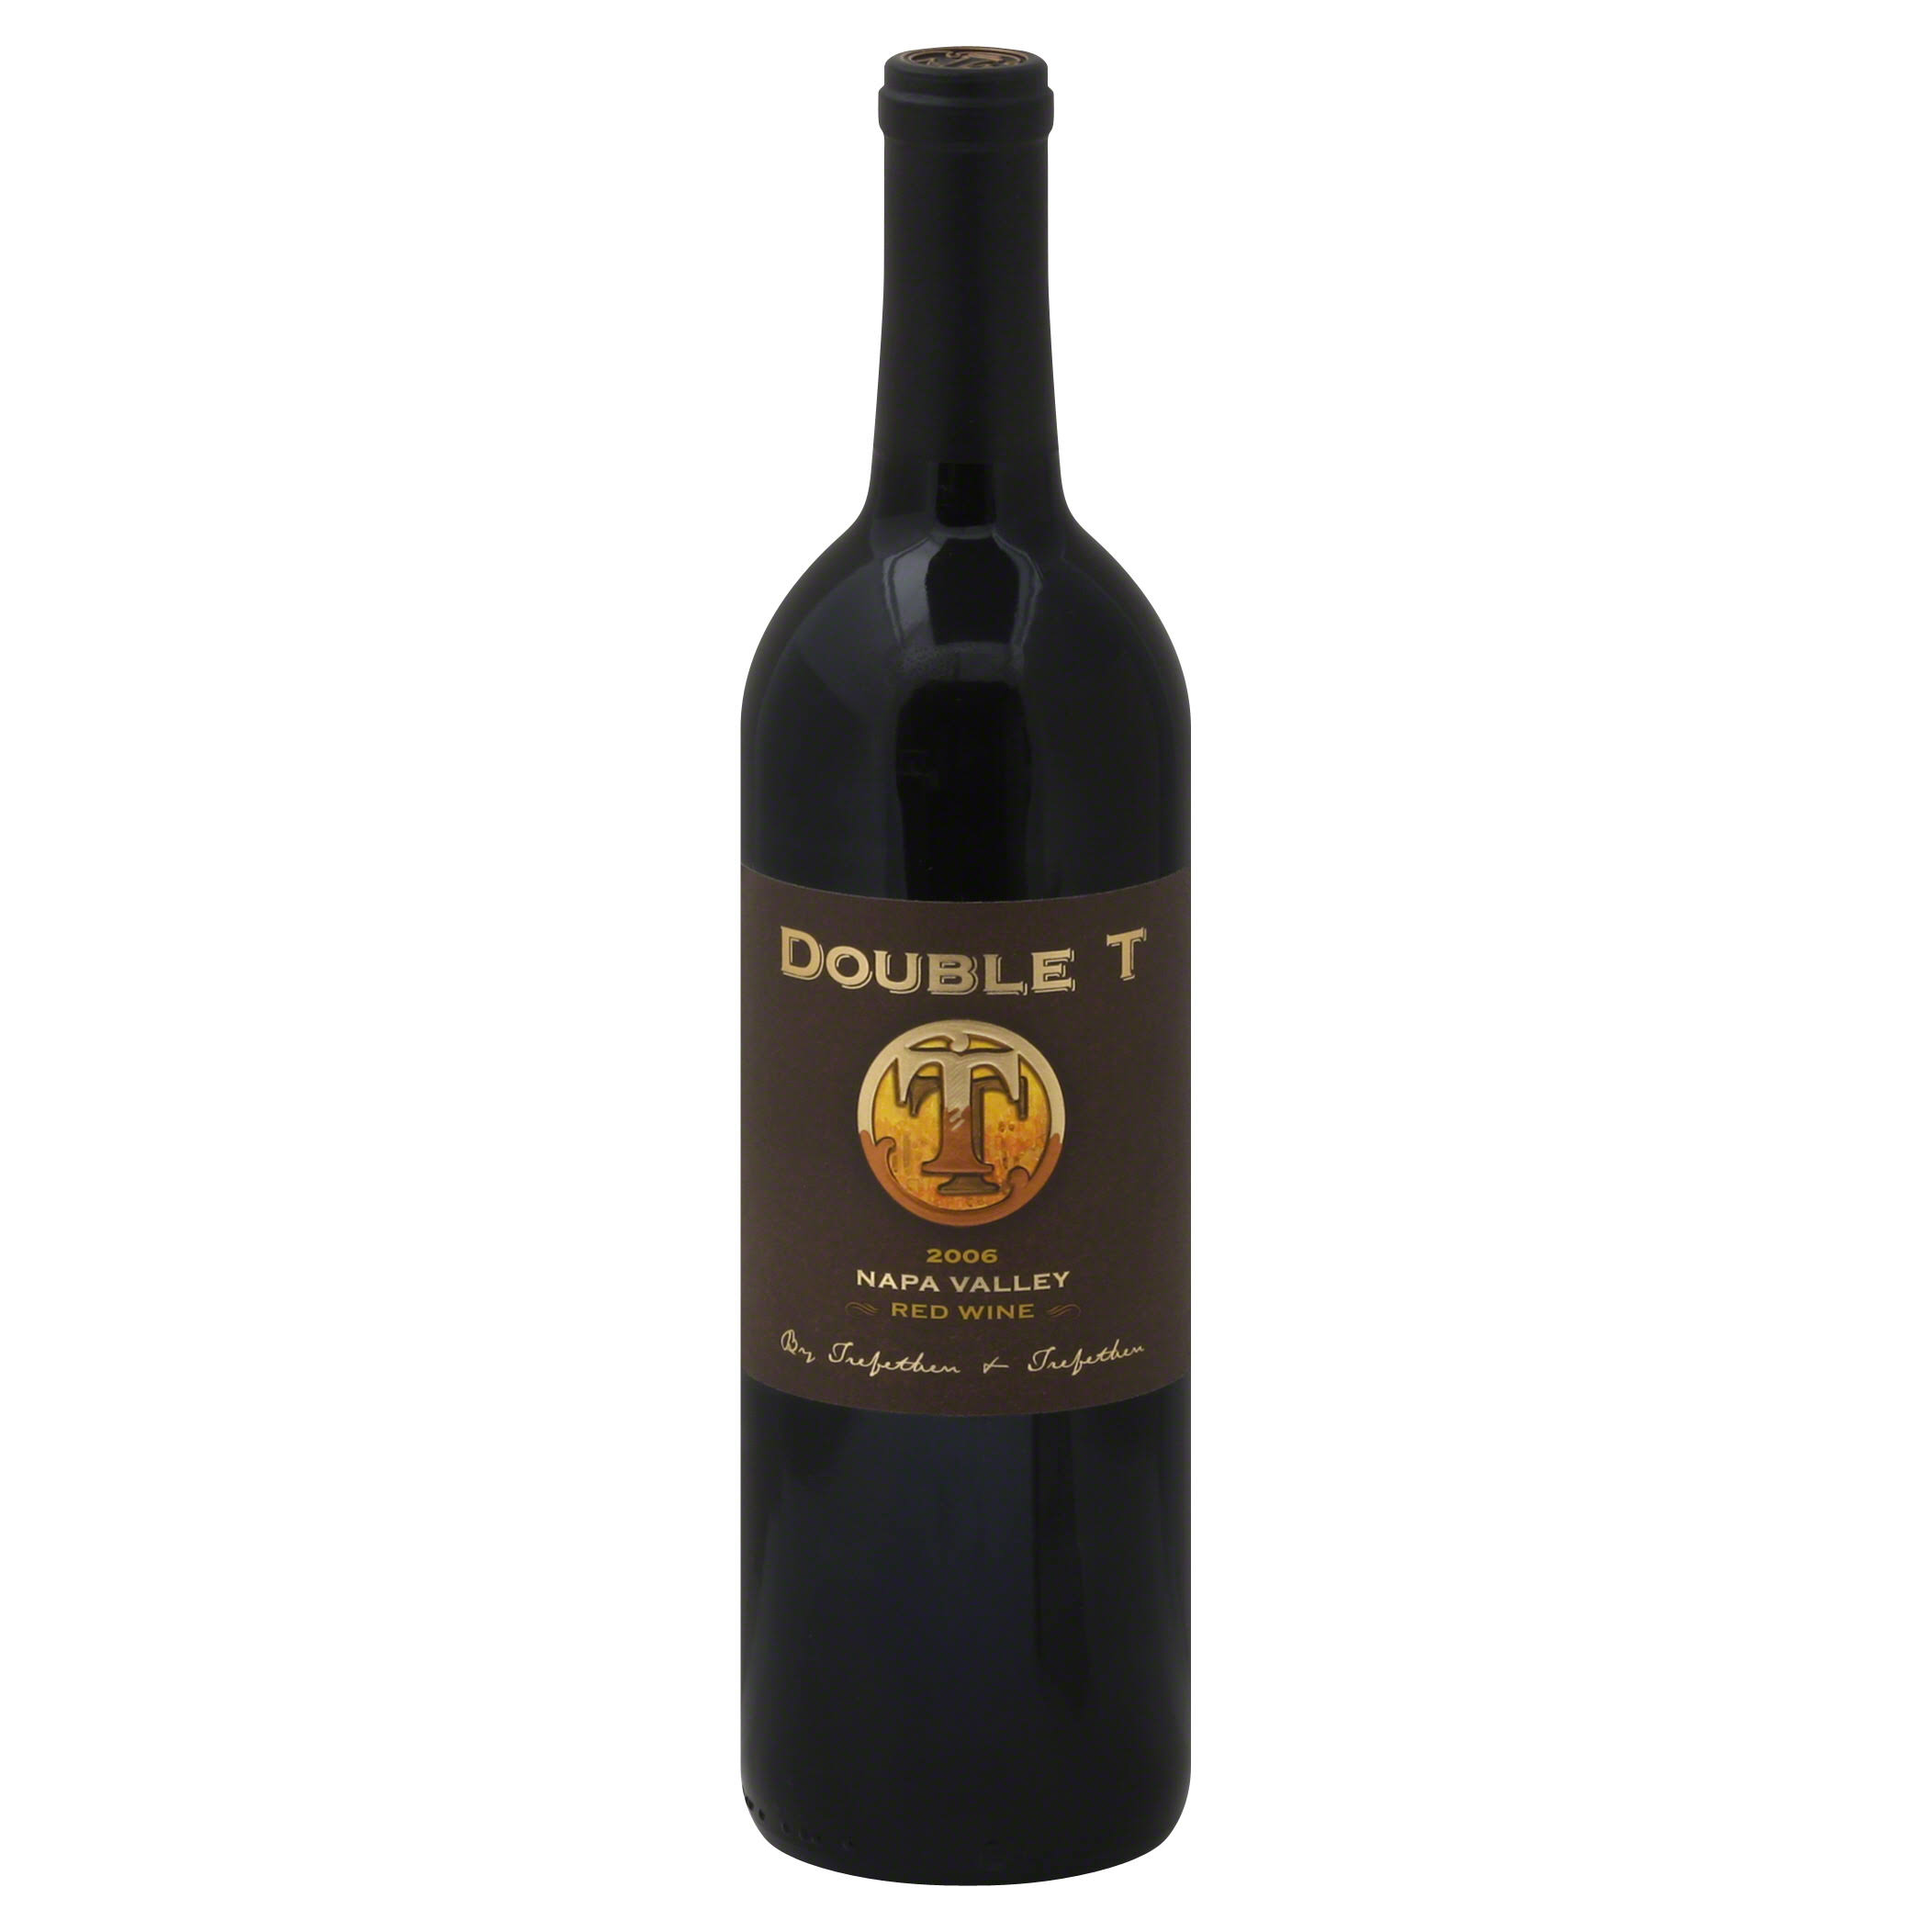 Double T Red Wine, Napa Valley, 2006 - 750 ml